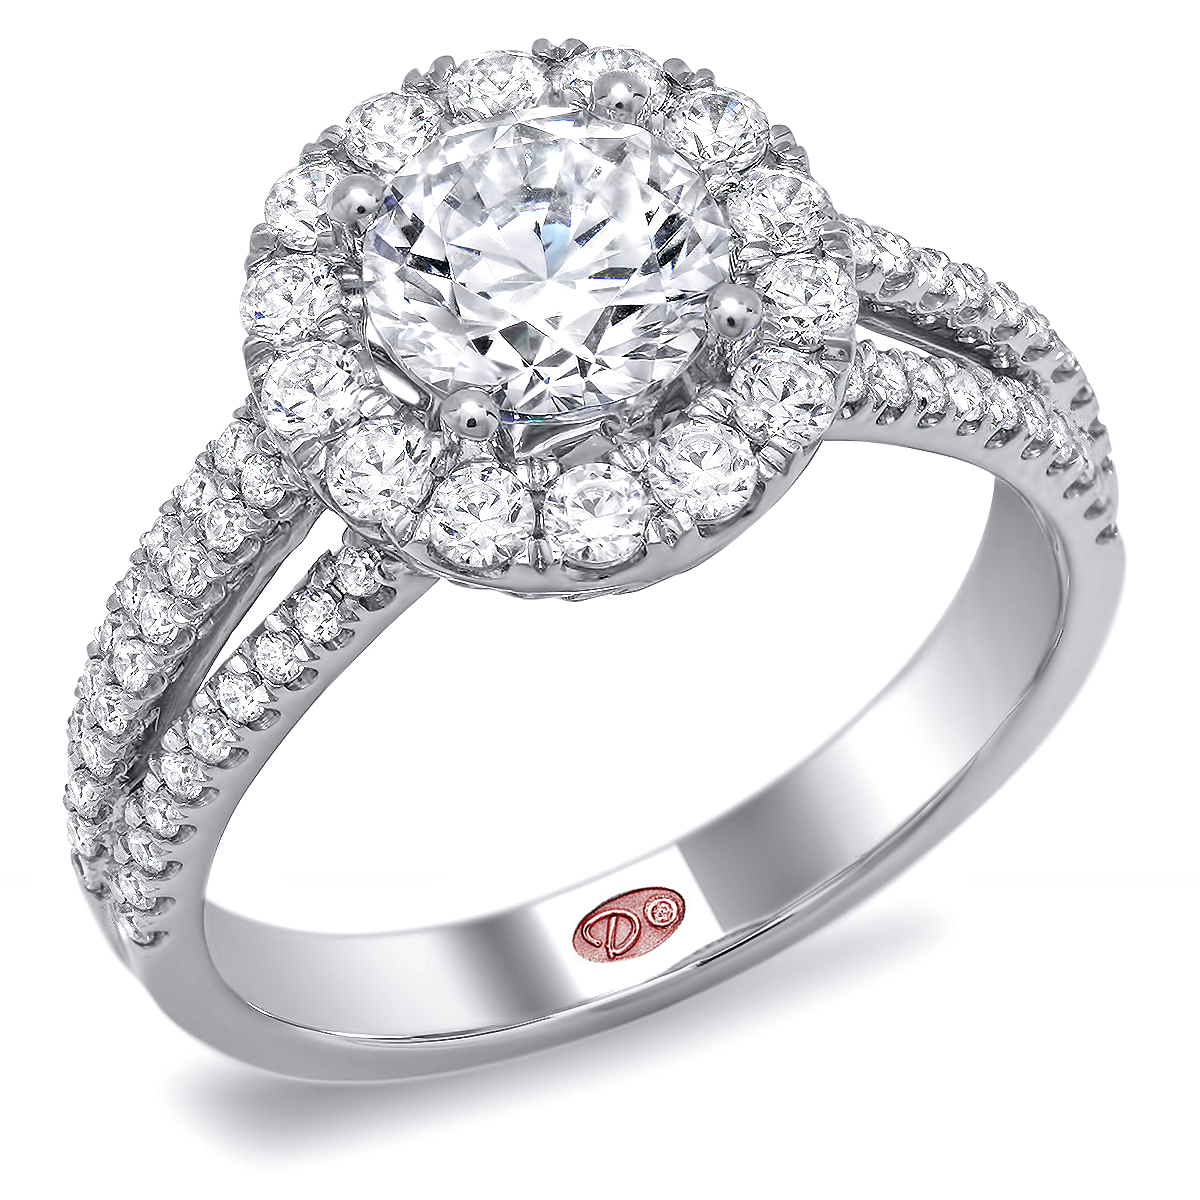 Designer Engagement Rings In Los Angeles